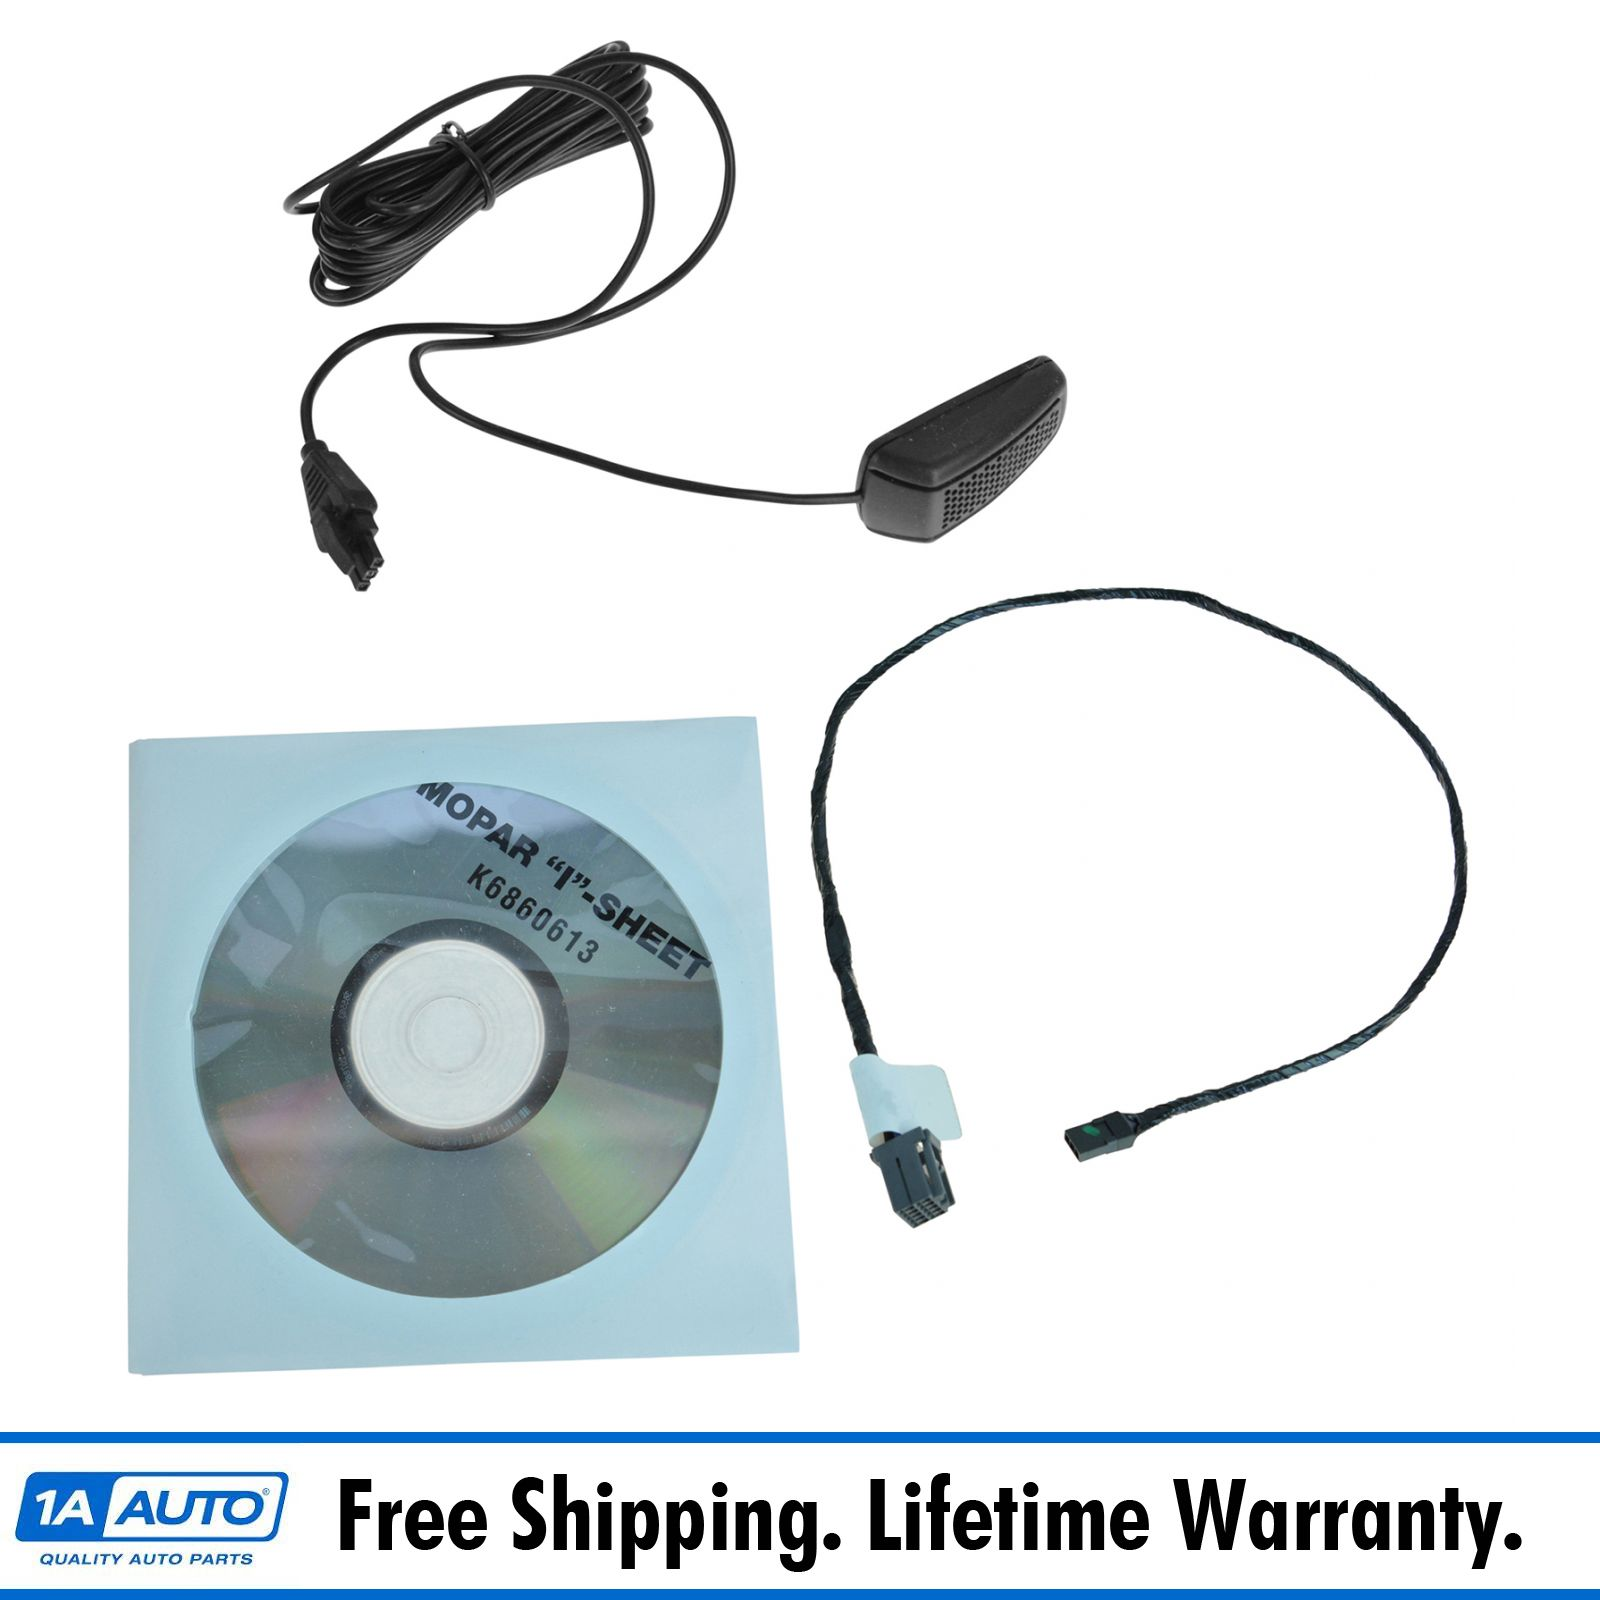 Details about Mopar Mygig RER Navigation Blue Tooth Microphone Kit for  Liberty Grand Cherokee